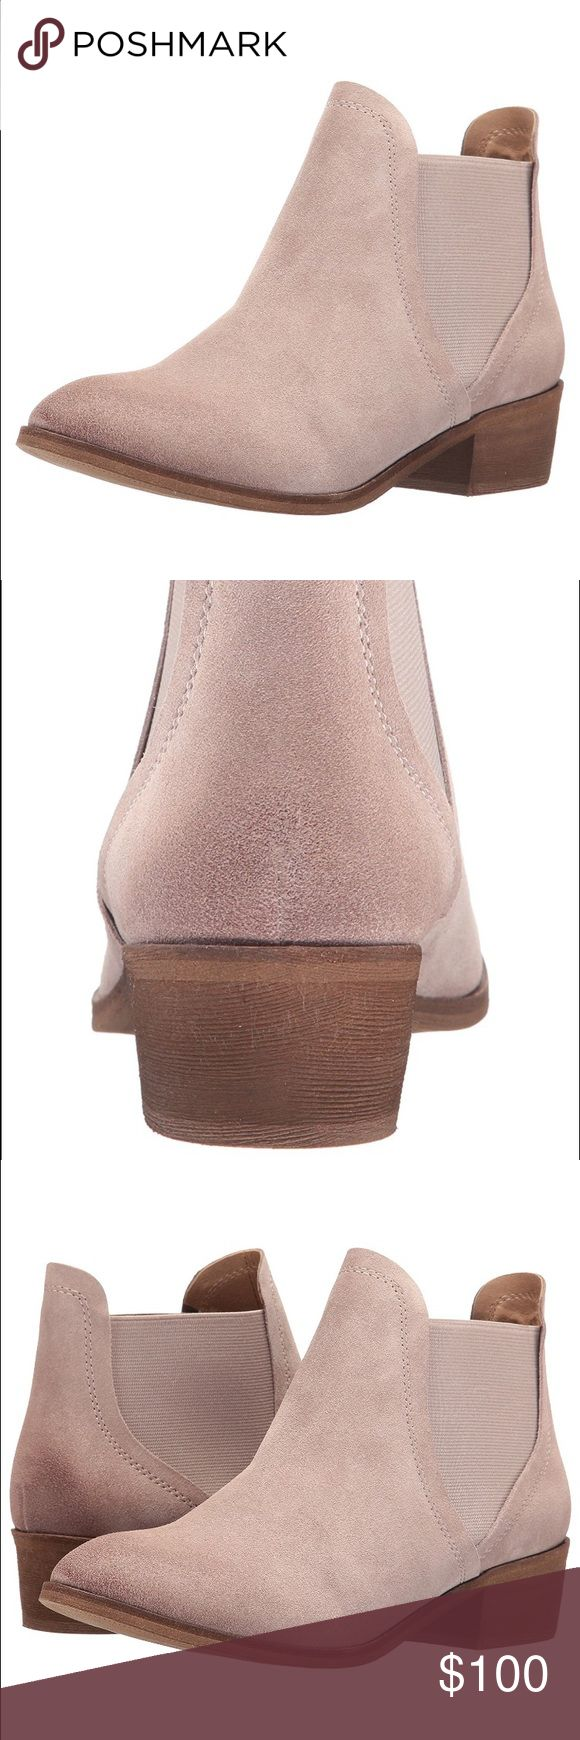 Splendid Booties Light nut / beige color beautiful suede booties by Splendid, new with tags! Splendid Shoes Ankle Boots & Booties